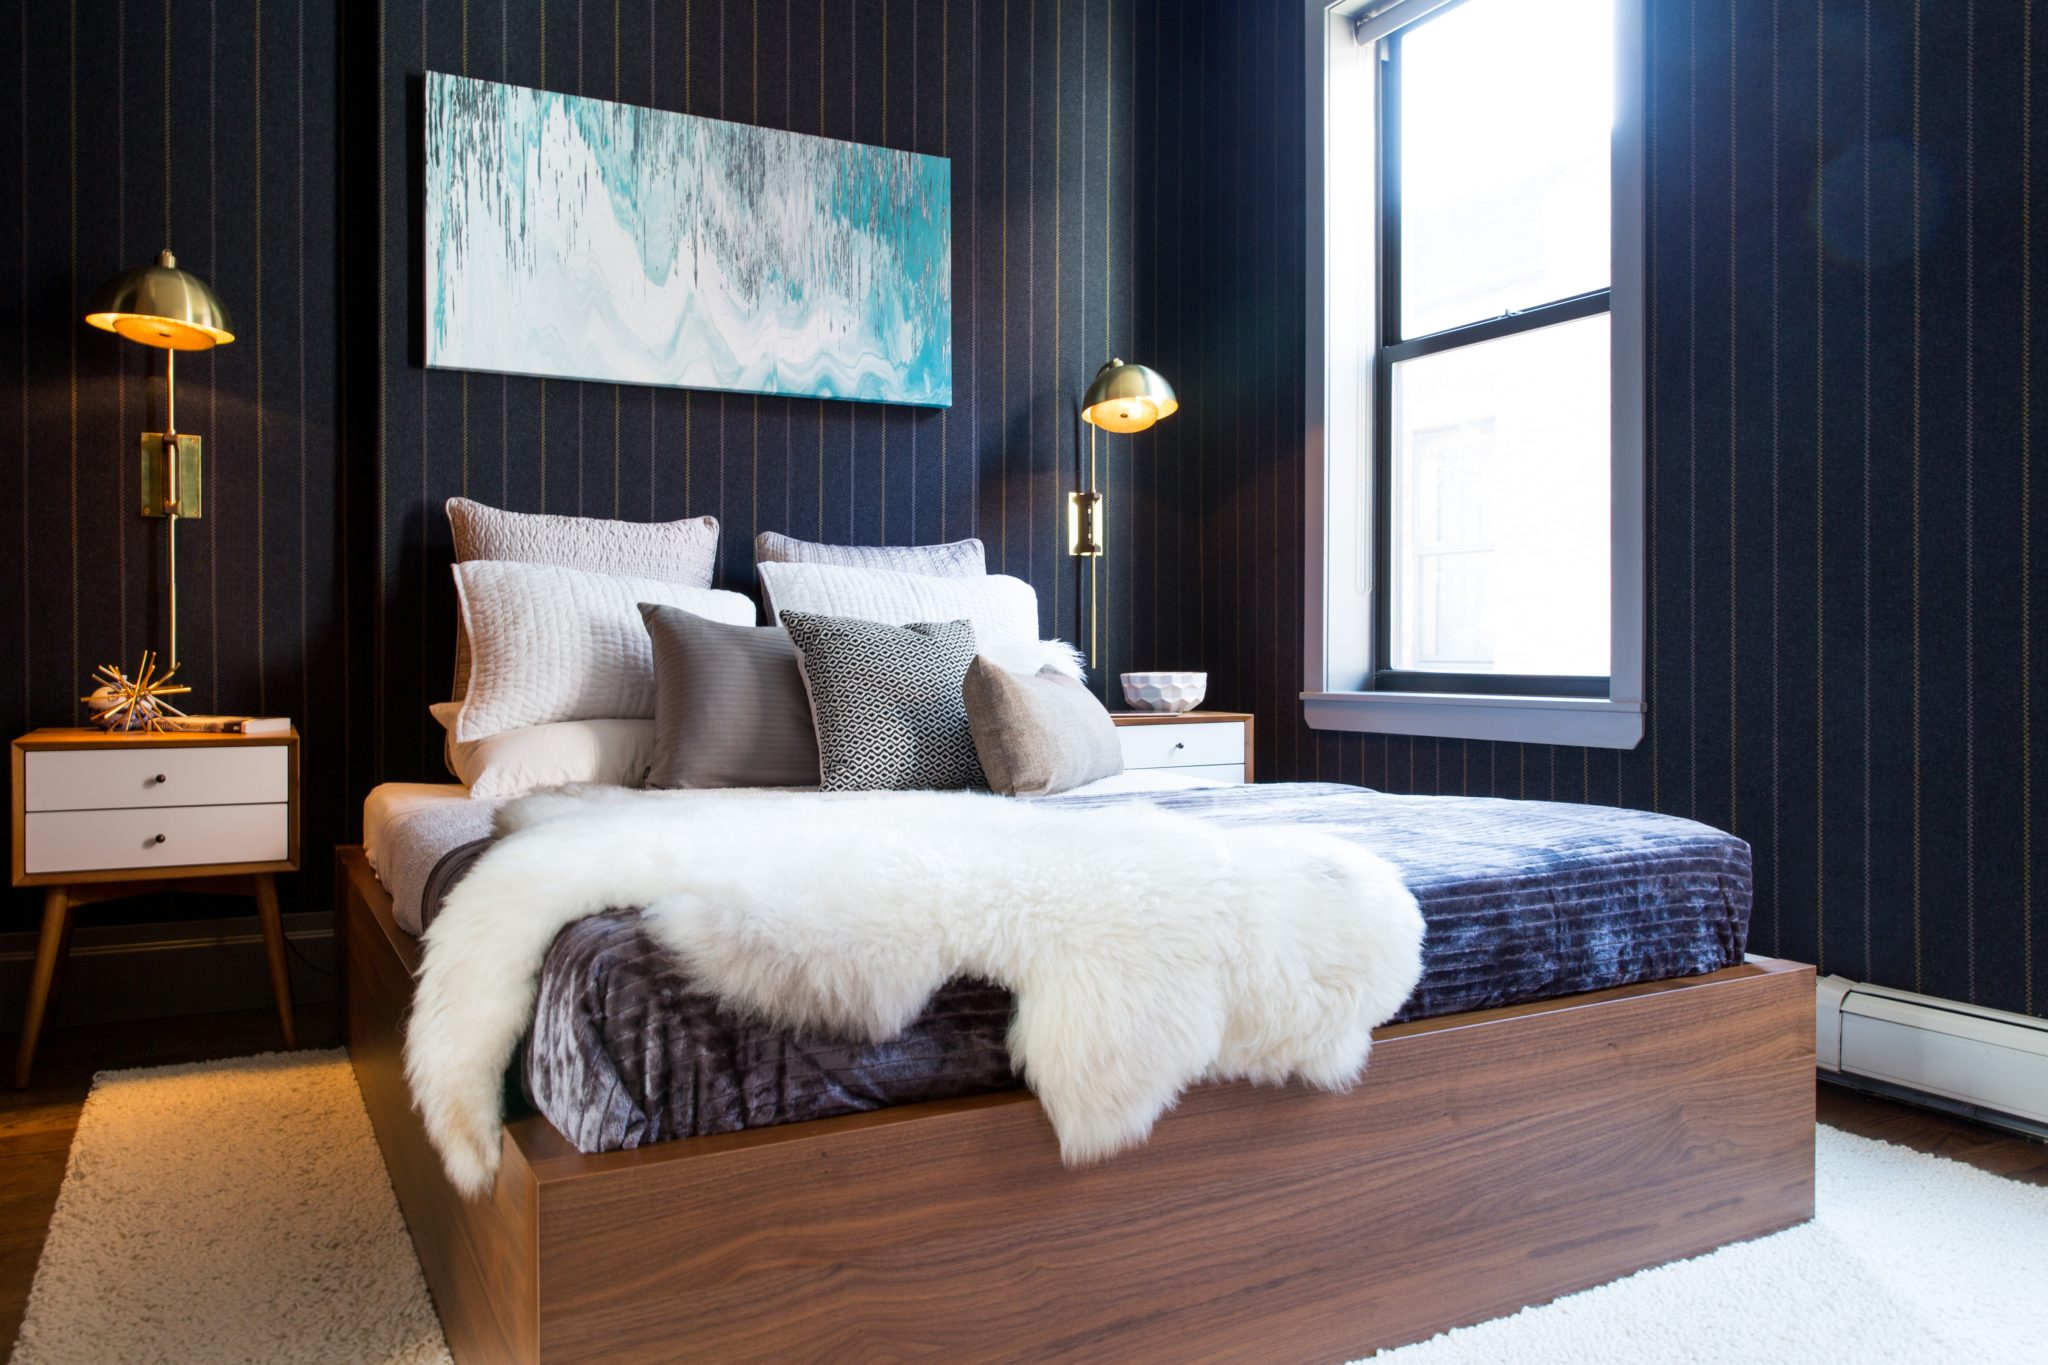 Luxury Harlem master bedroom by designs by human.